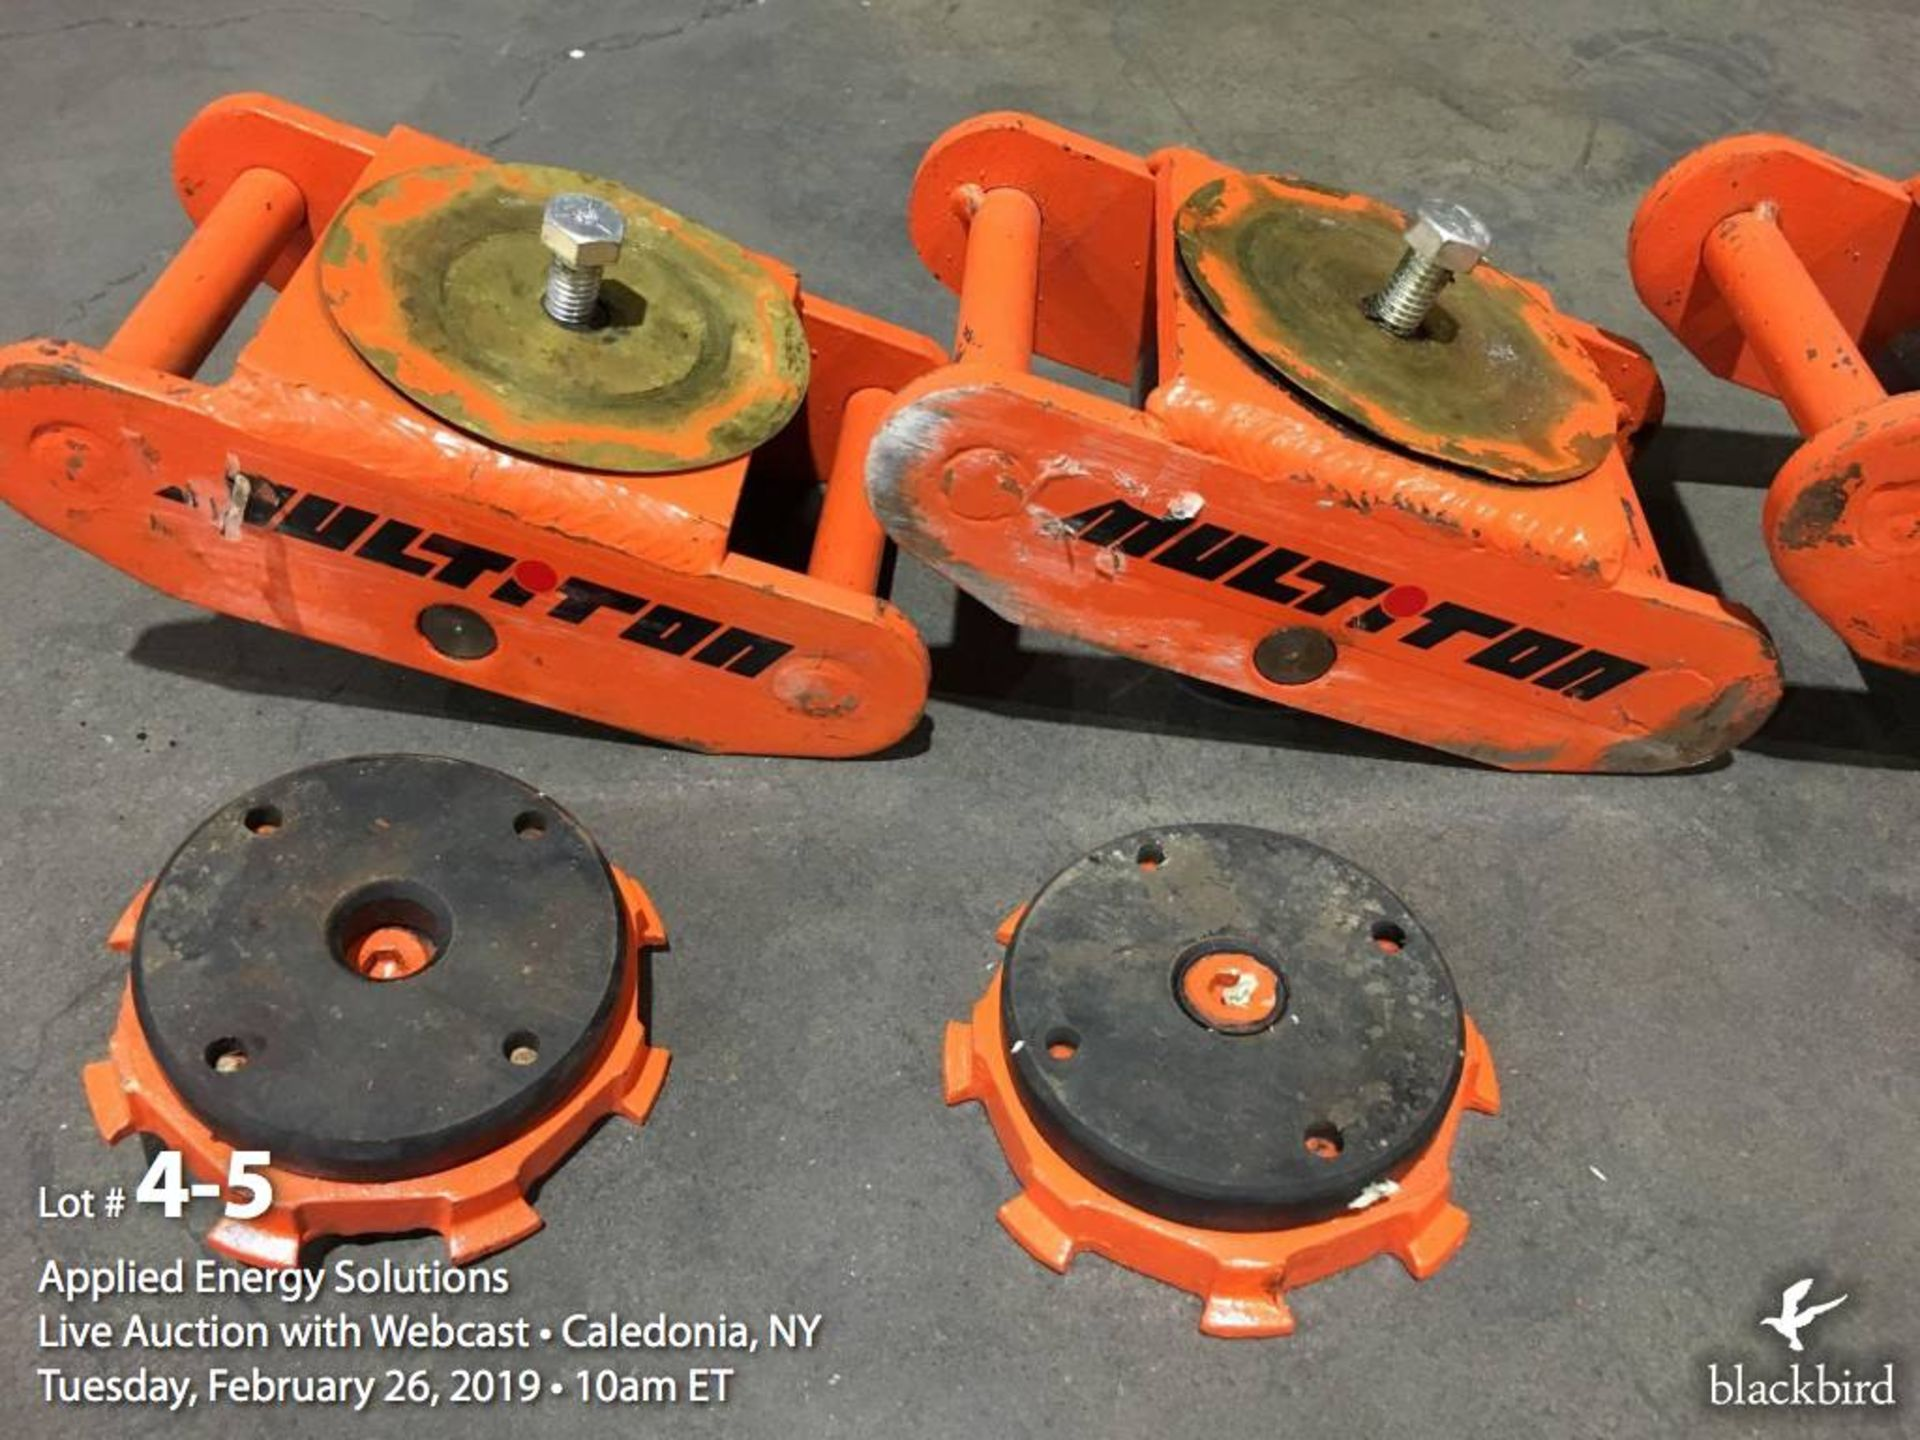 MultiTon equipment skate set with case - Image 5 of 5